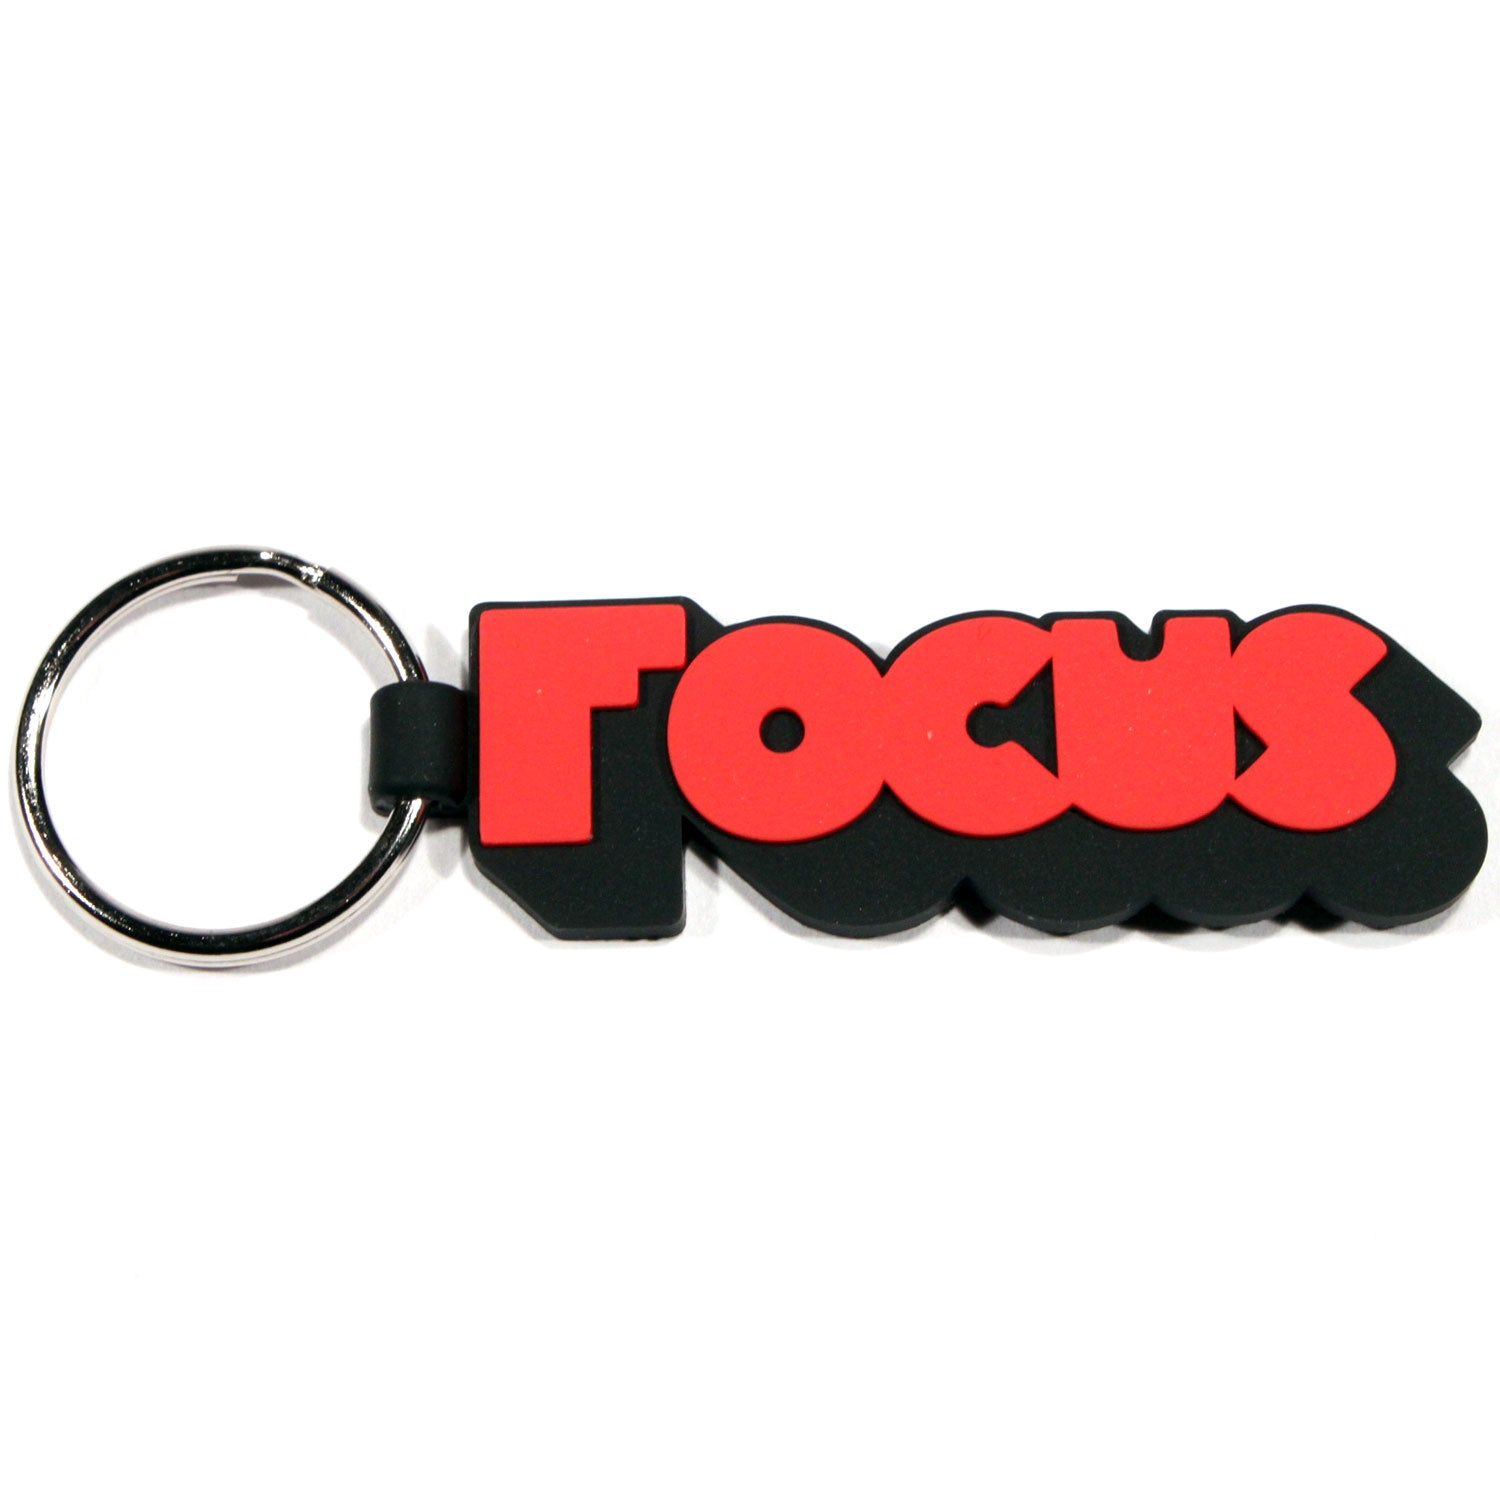 Focus 3D Logo Rubber Keychain - Black/Red